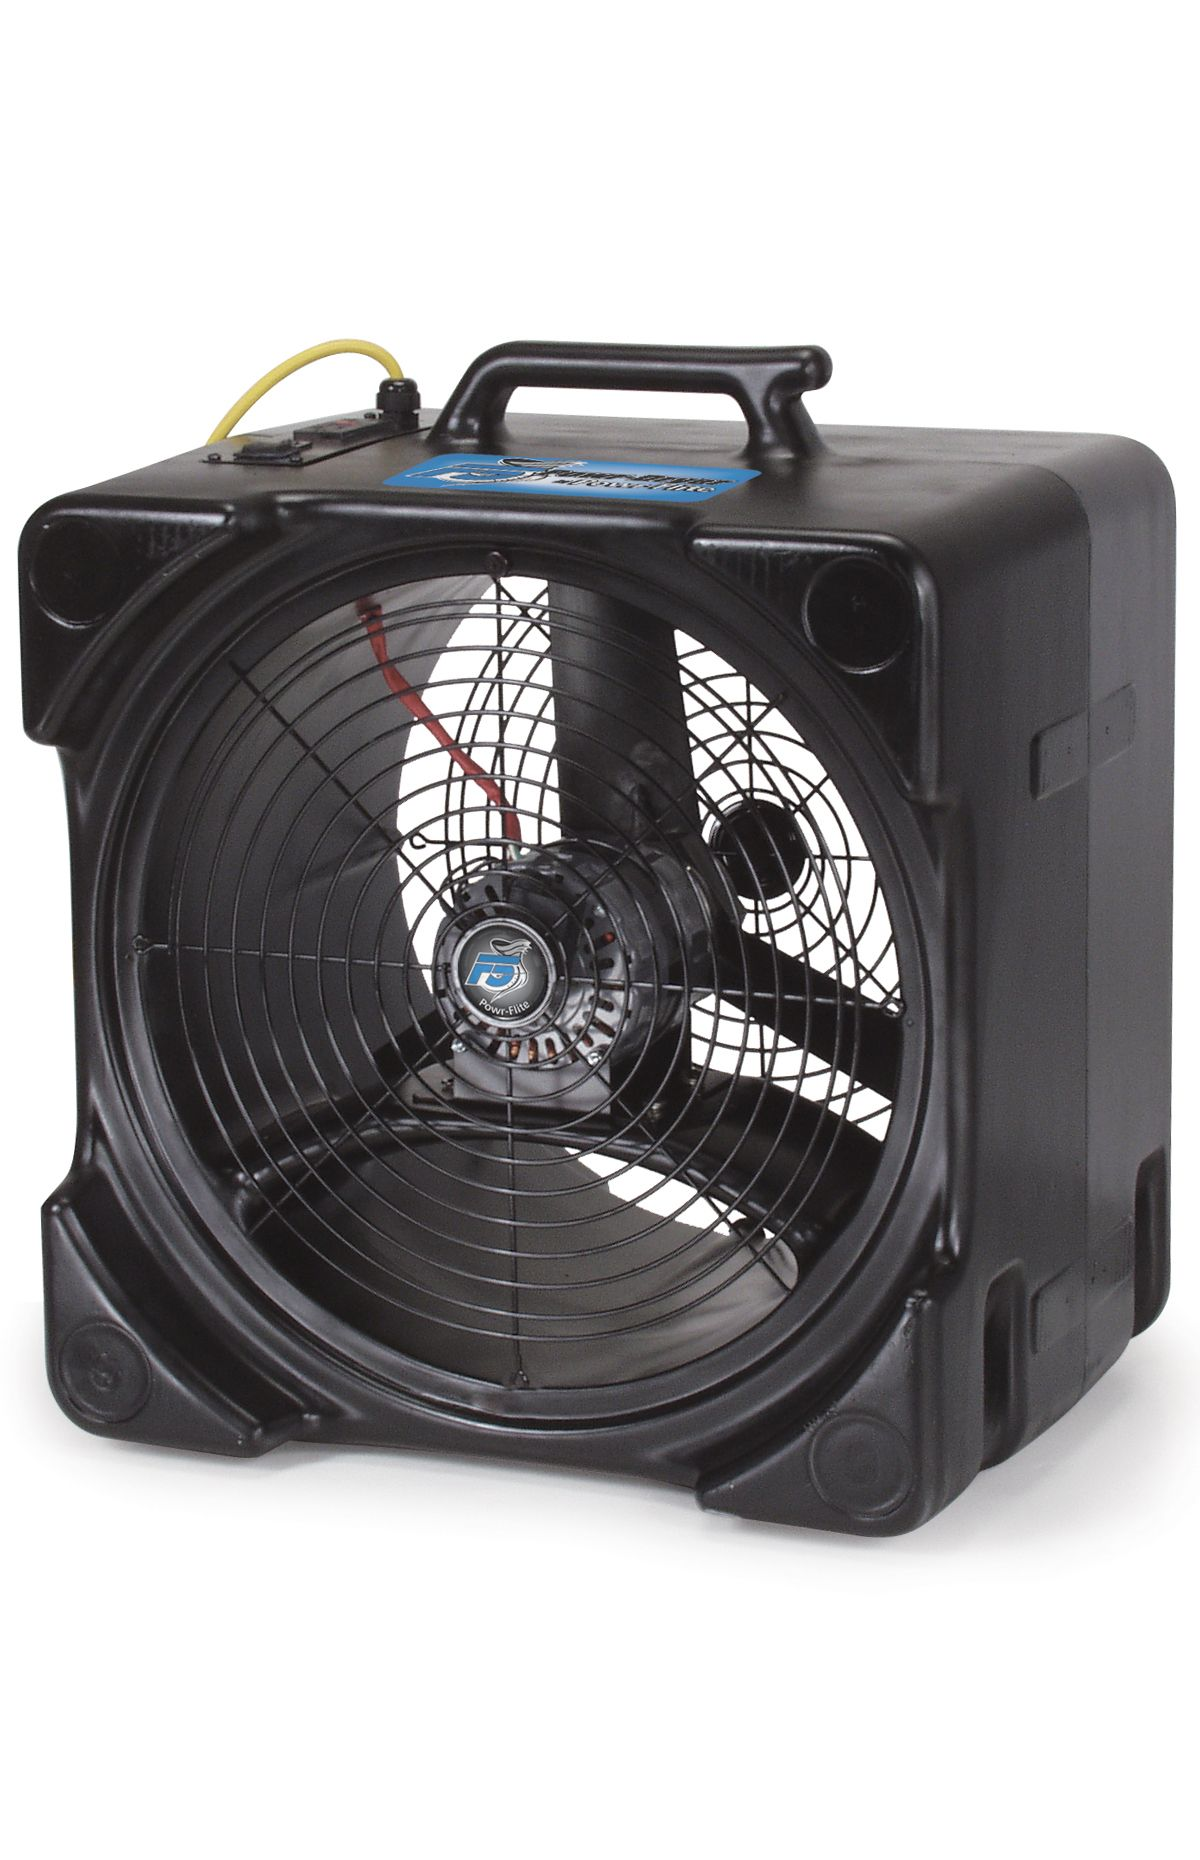 PDF5 Power-Flite Axial Fan / Air Mover PDF5